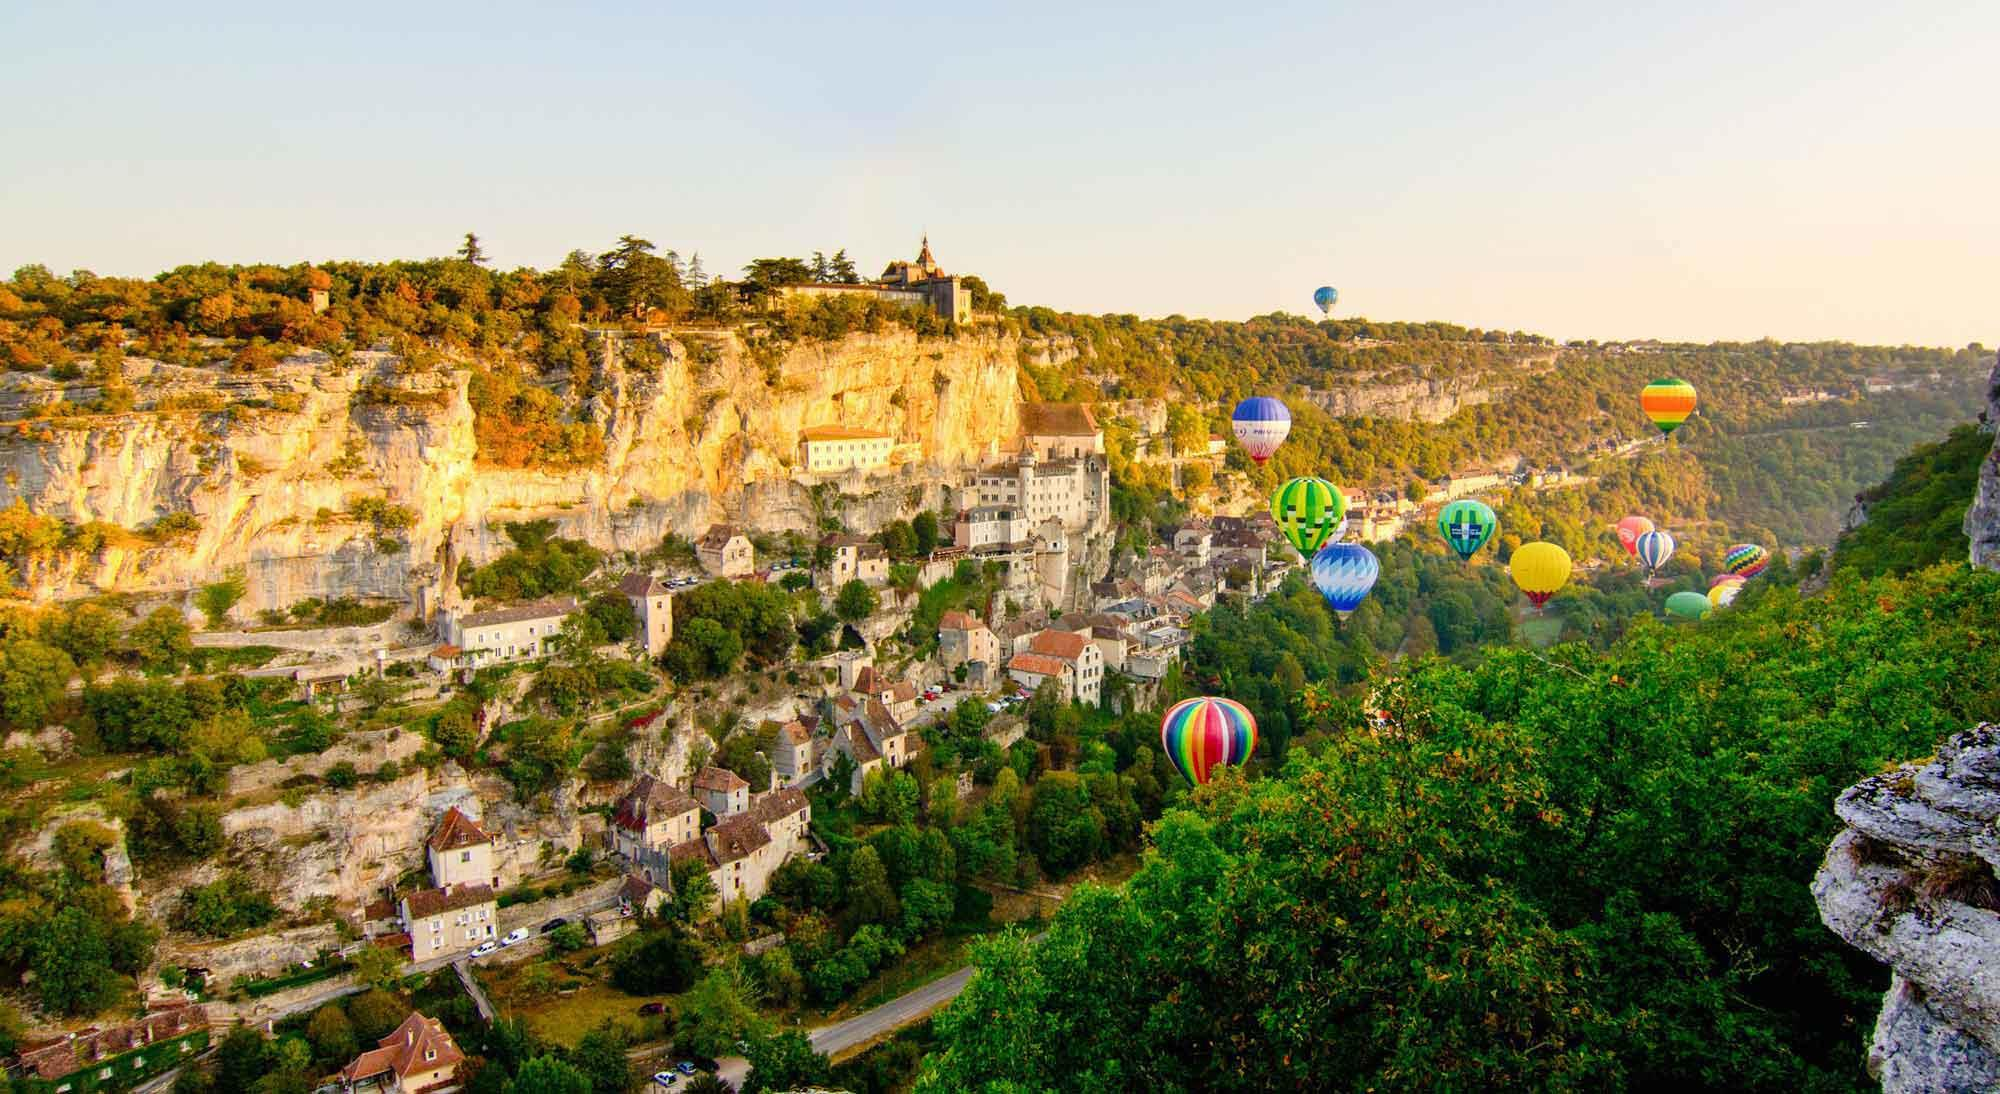 Establishment Camping Les Tilleuls - Rocamadour